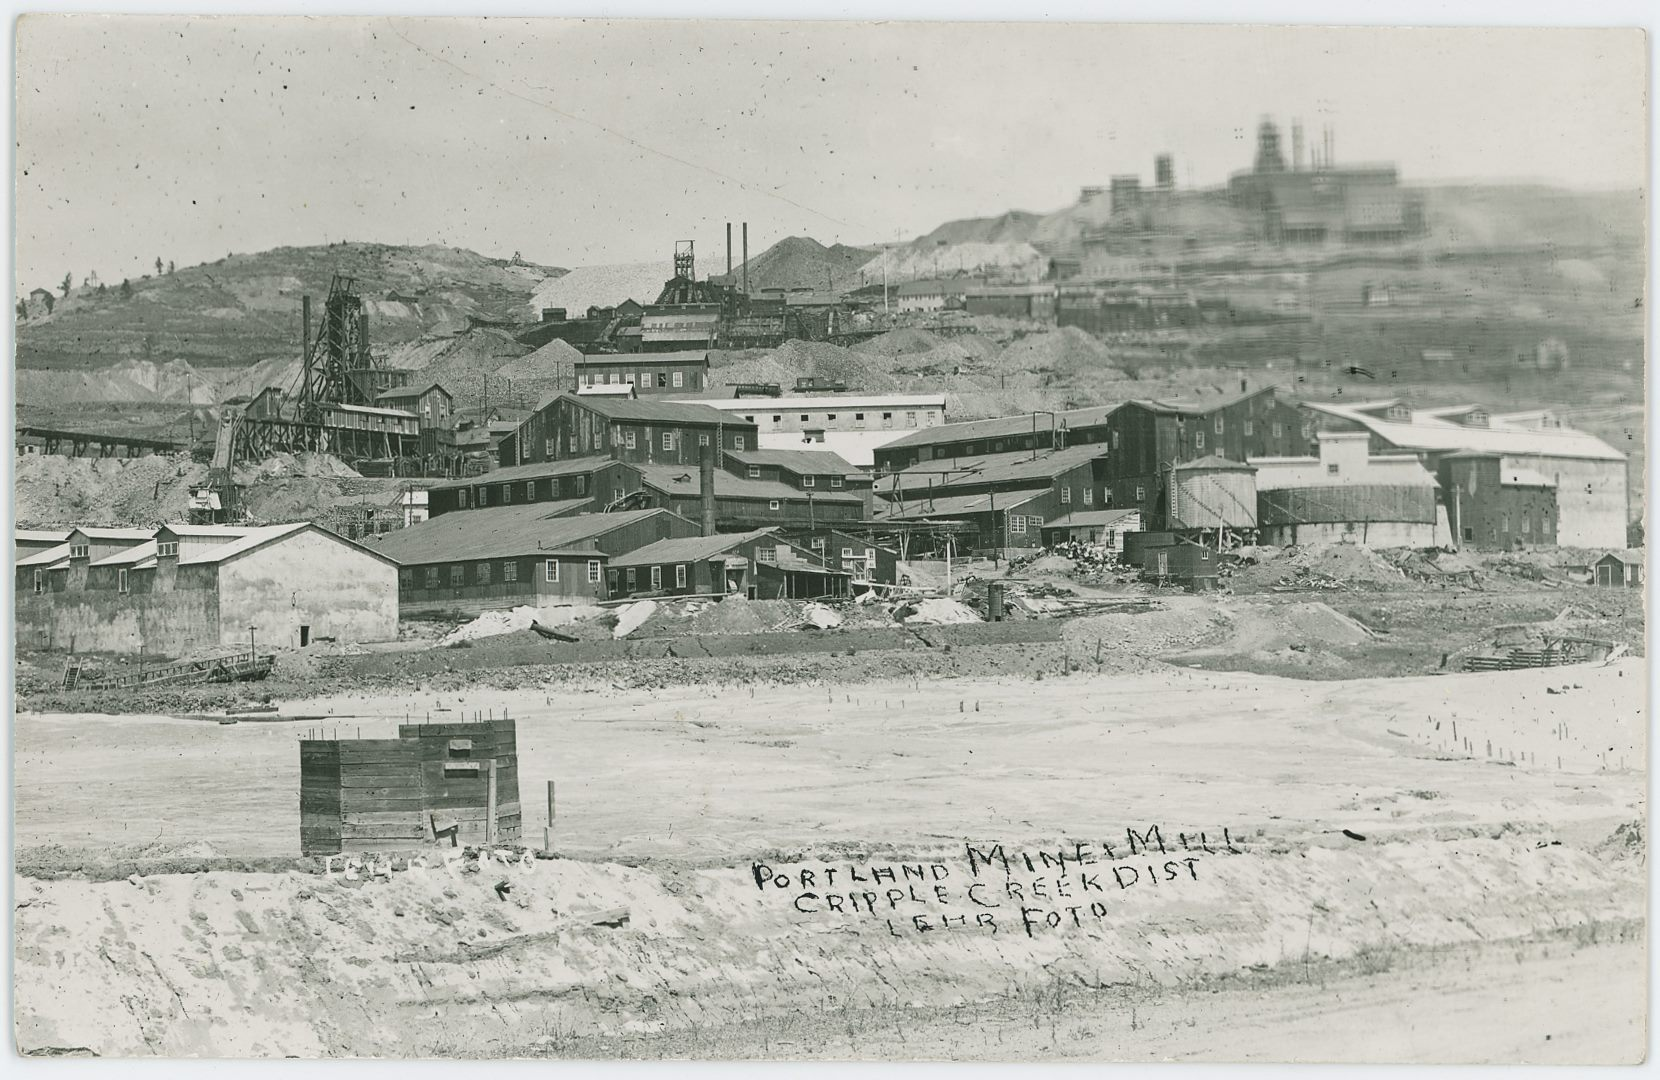 A view at the cramped hillside below the Independence Mine, and the Portland Mines, as the space been used for making quite a large mill, with what appears to be a slime dam in the foreground. Seems like this has obliviated the roadbed of both the Golden Circle and the Short Line/High Line railroad beds, but maybe not fully, hard to tell for sure.    Sadly though, the Portland No. 2 Mine, up in upper right top is way out of focus and not useful at all except for location purposes as the shape of it can be seen between the very blurred view in that area of this postcard view. The Independence Mine has lost its Shaft House and has an open Head-Frame, so that might help date this image, same as with the large mill in the foreground, by time of this image being photographed this mill has been bought by the Portland Company, even though it originally was part of the Independence Operations.